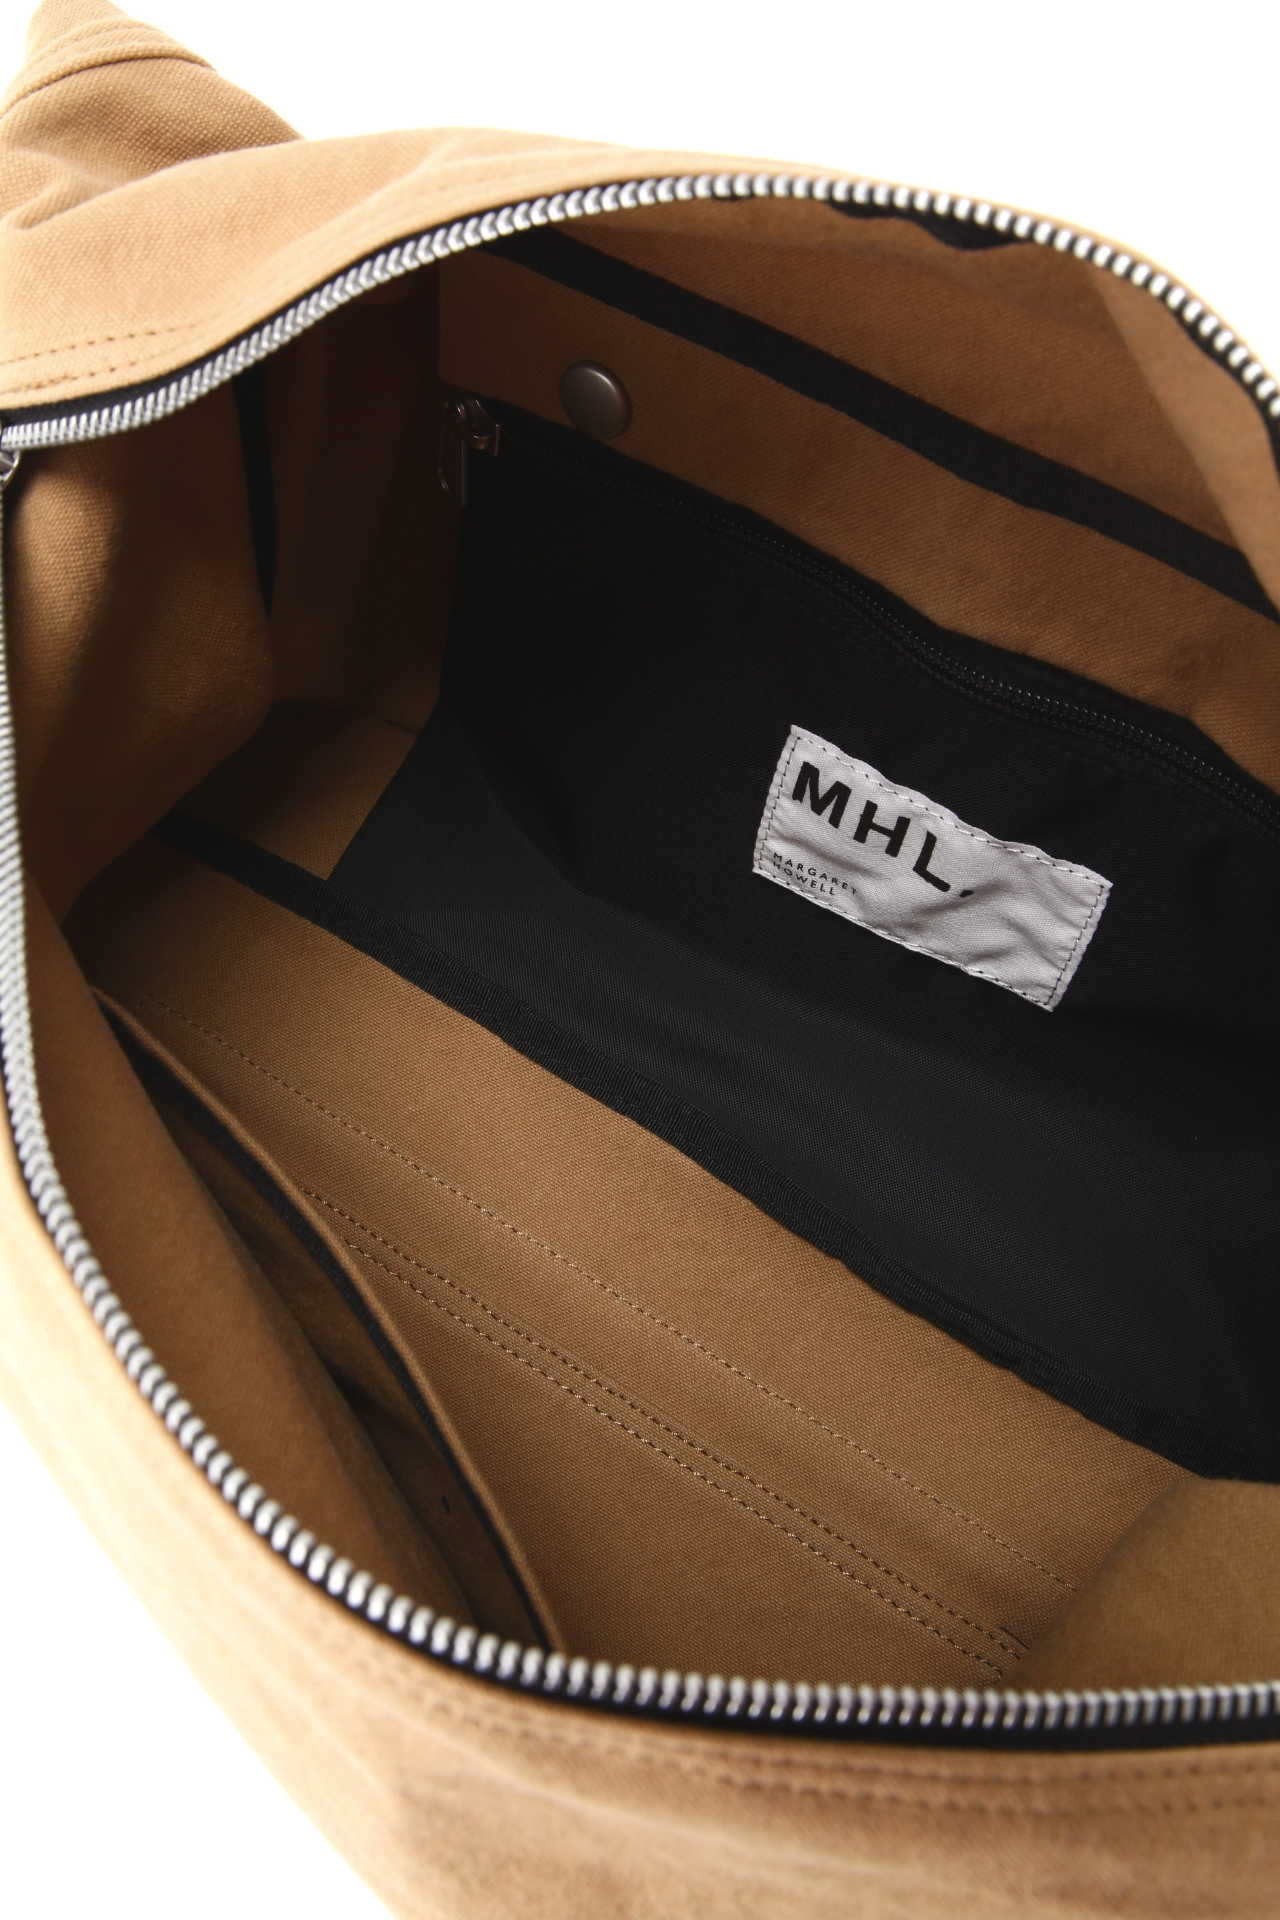 WASHED COTTON CANVAS(MHL SHOP限定)8